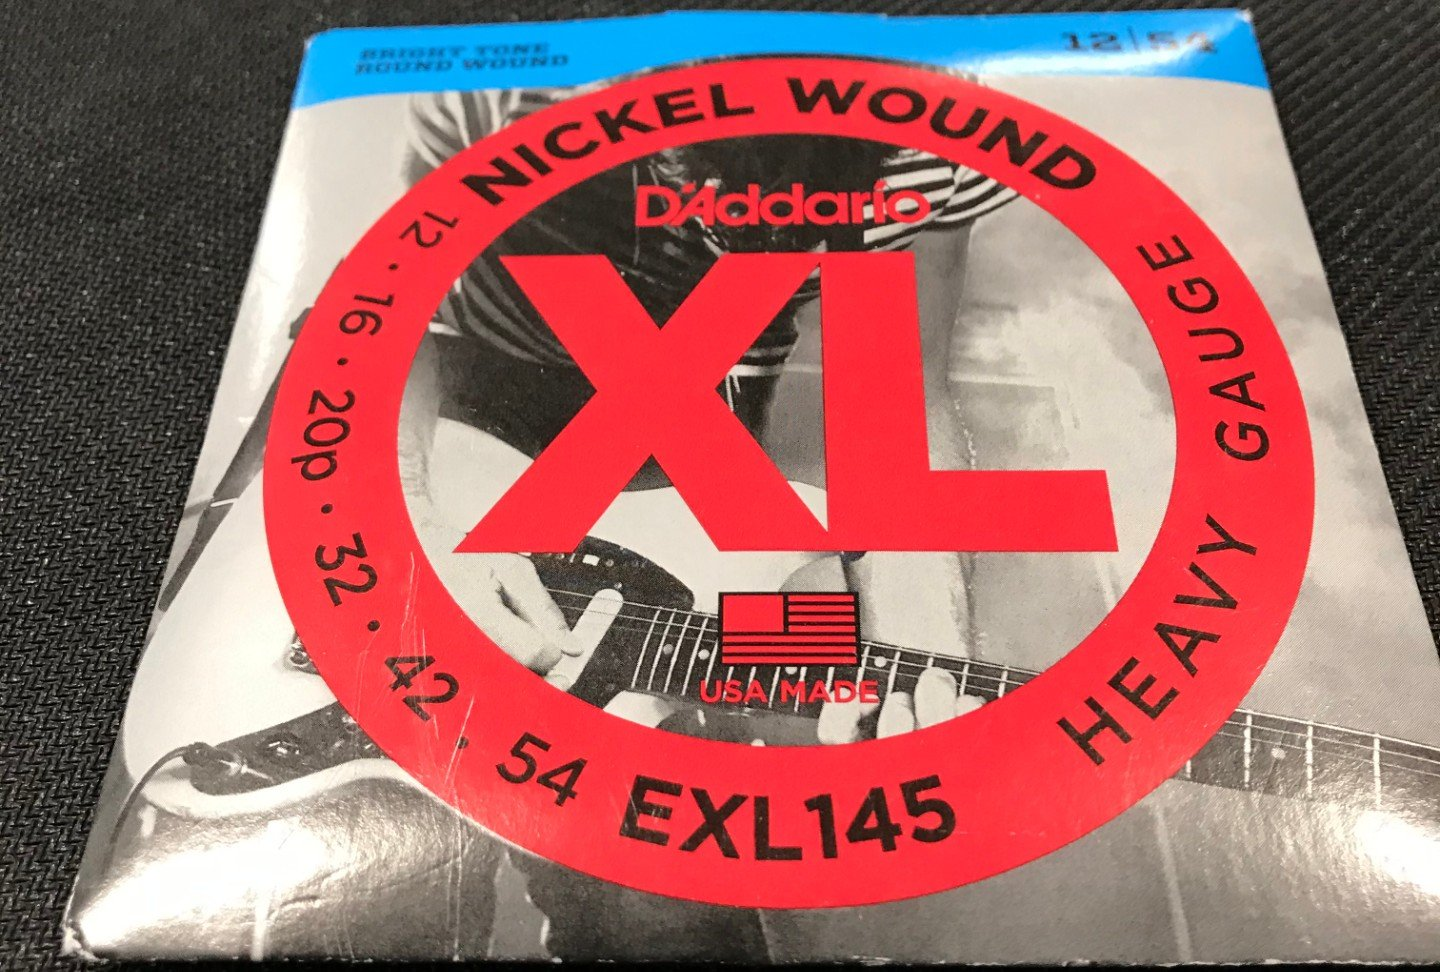 D'Addario EXL145 Nickel Wound Electric Guitar Strings, Heavy, 12-54 With Plain S...